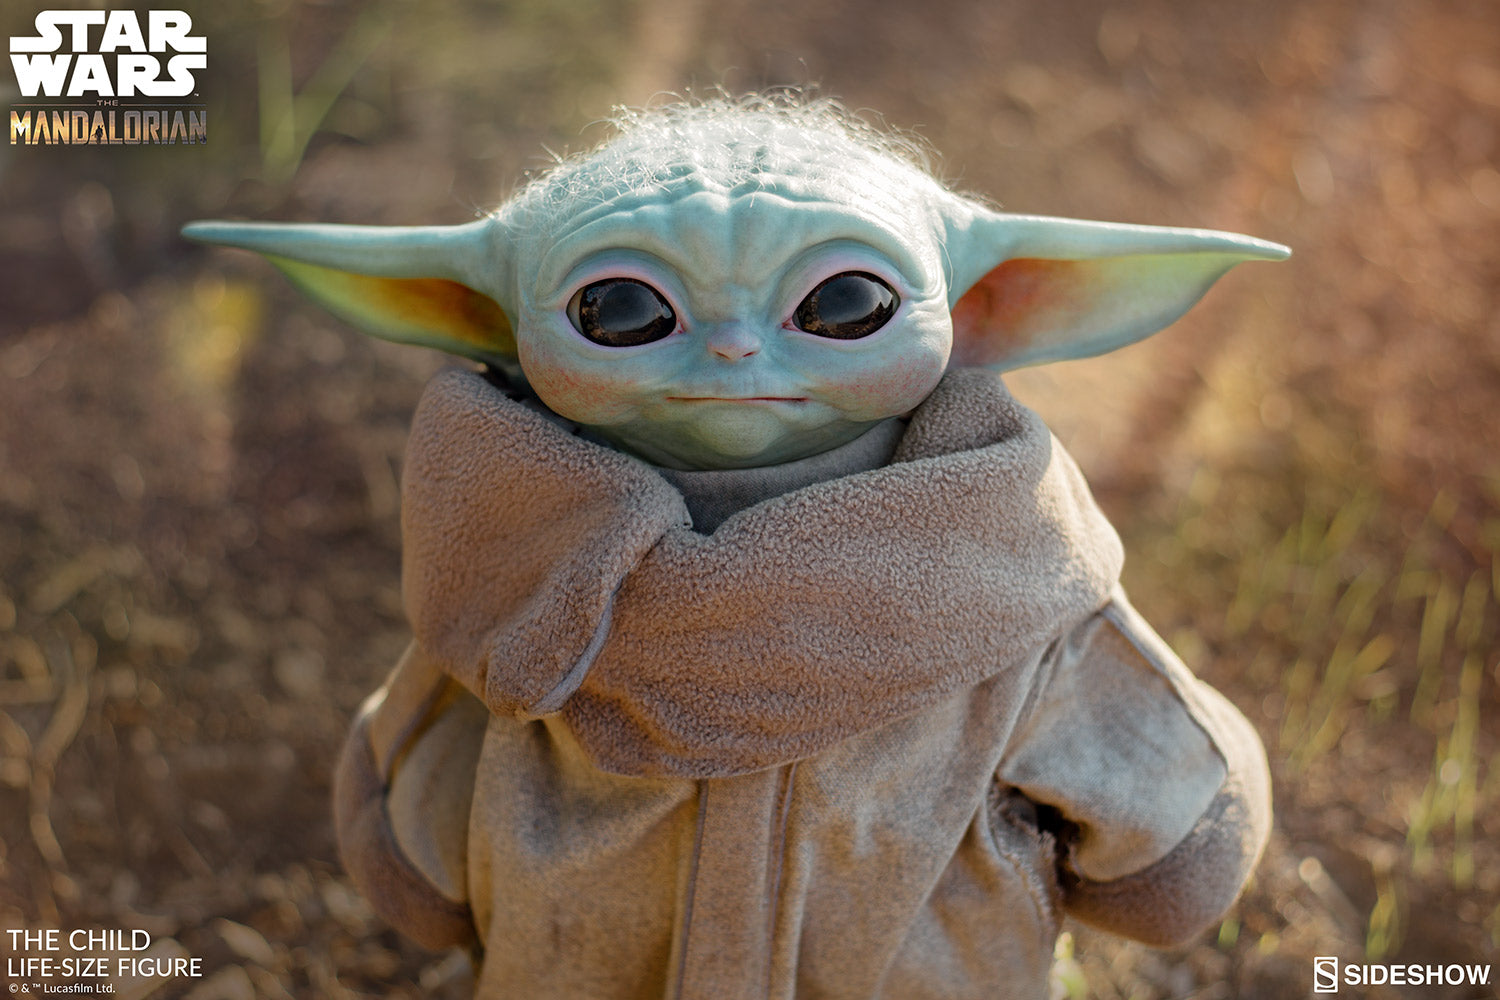 The Child Baby Yoda Life-Size Figure